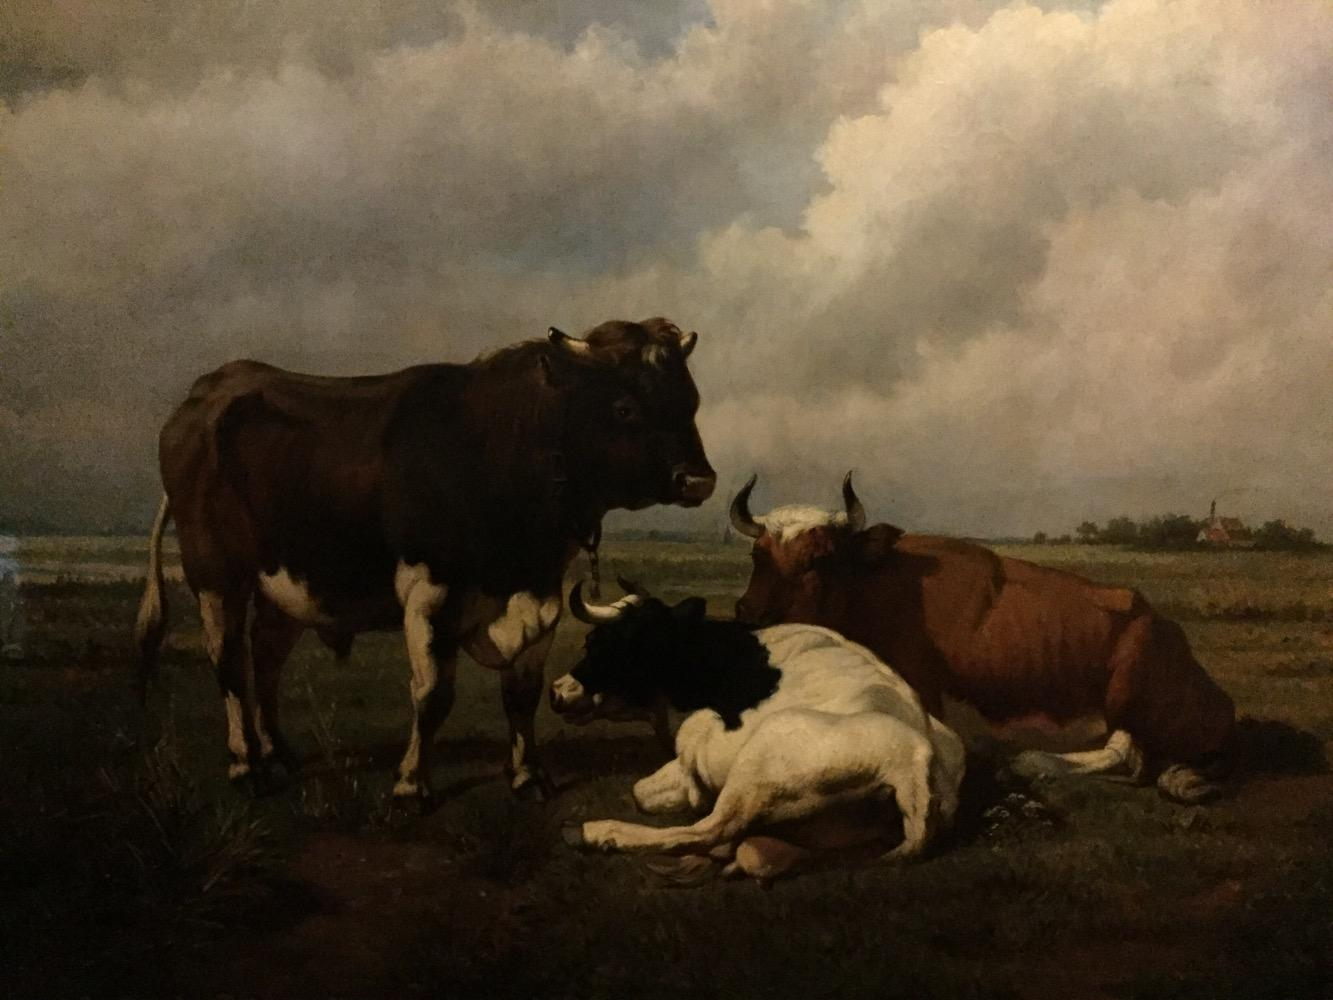 Bull with cows